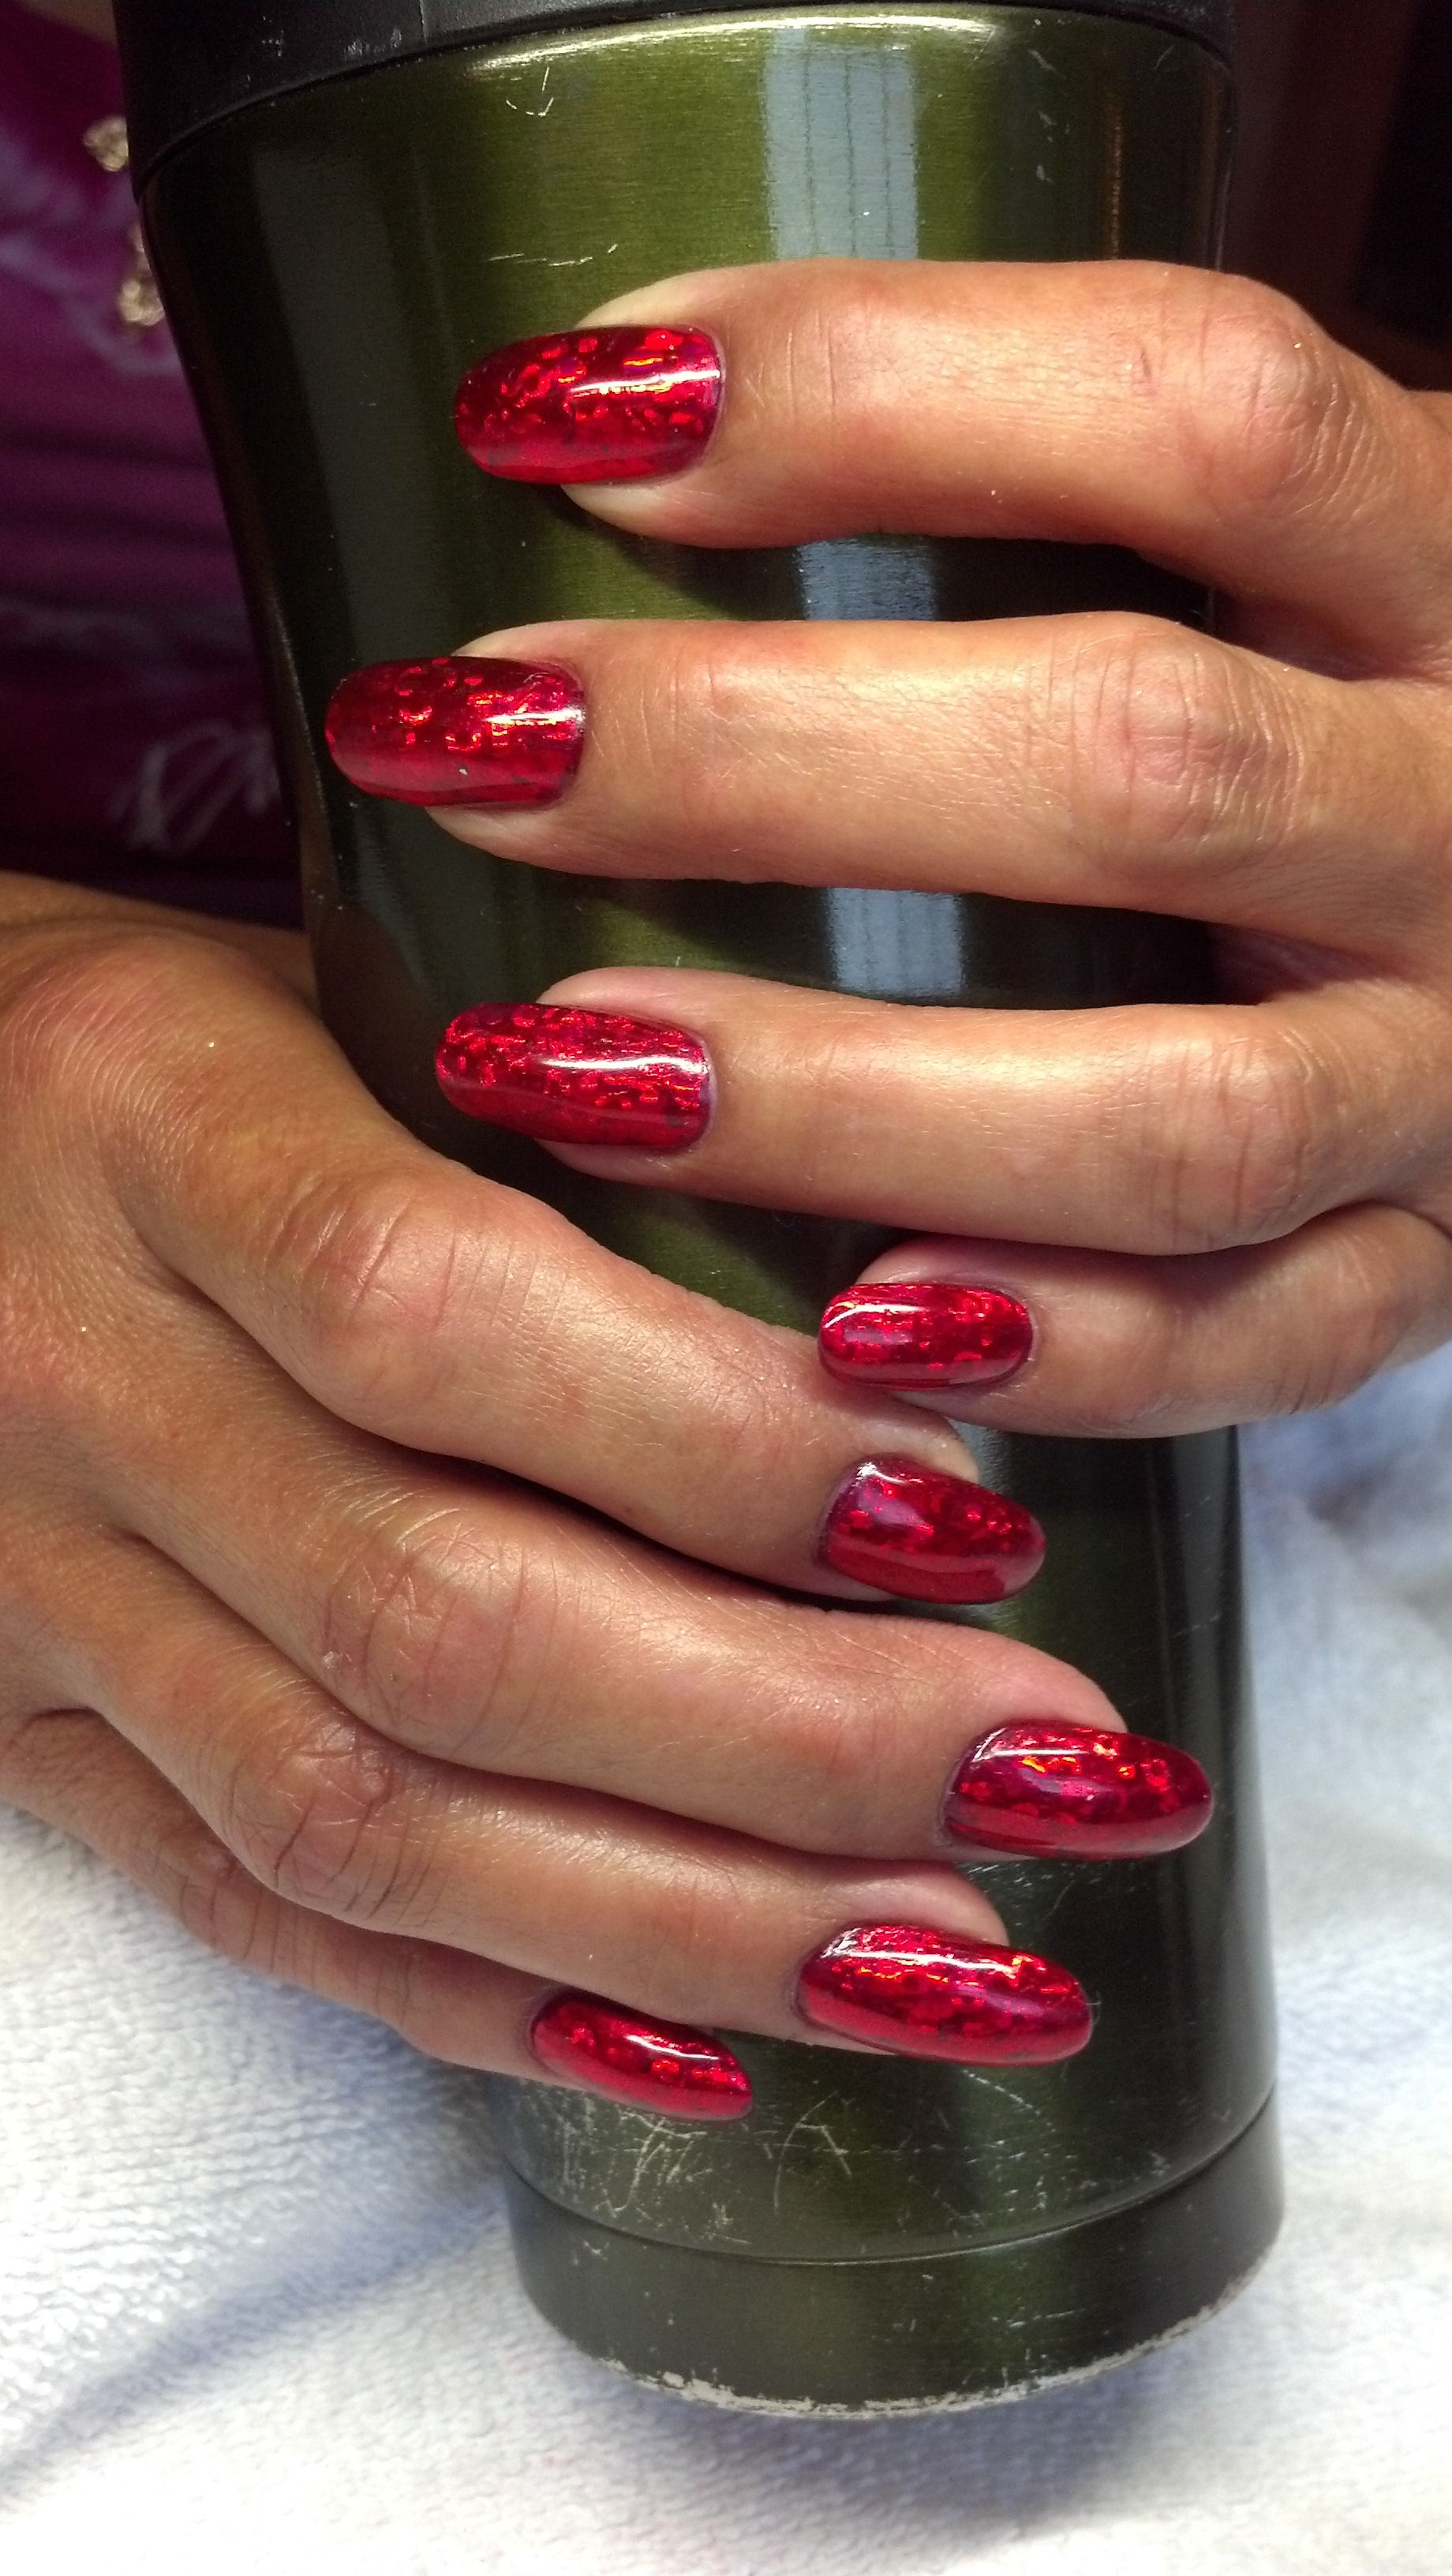 Natural Nails With Liquid Powder Cnd Shellac And Red Metallic Foil